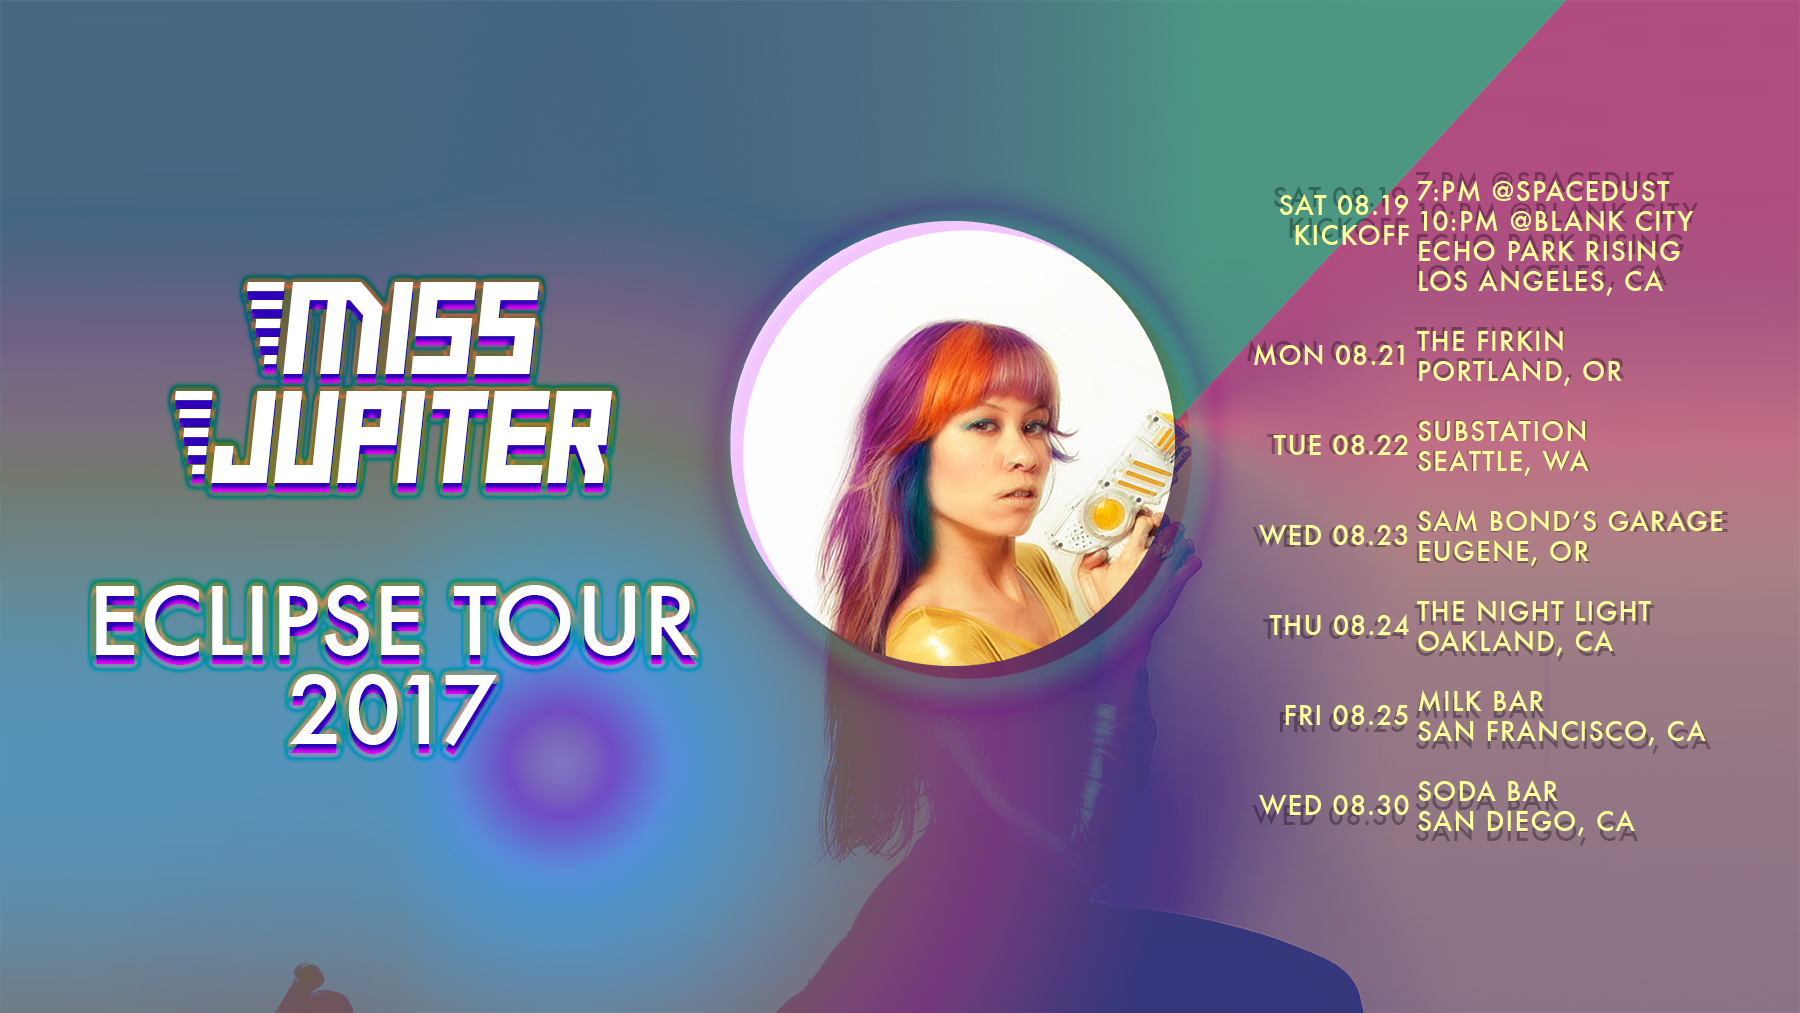 MISS JUPITER ECLIPSE TOUR 2017